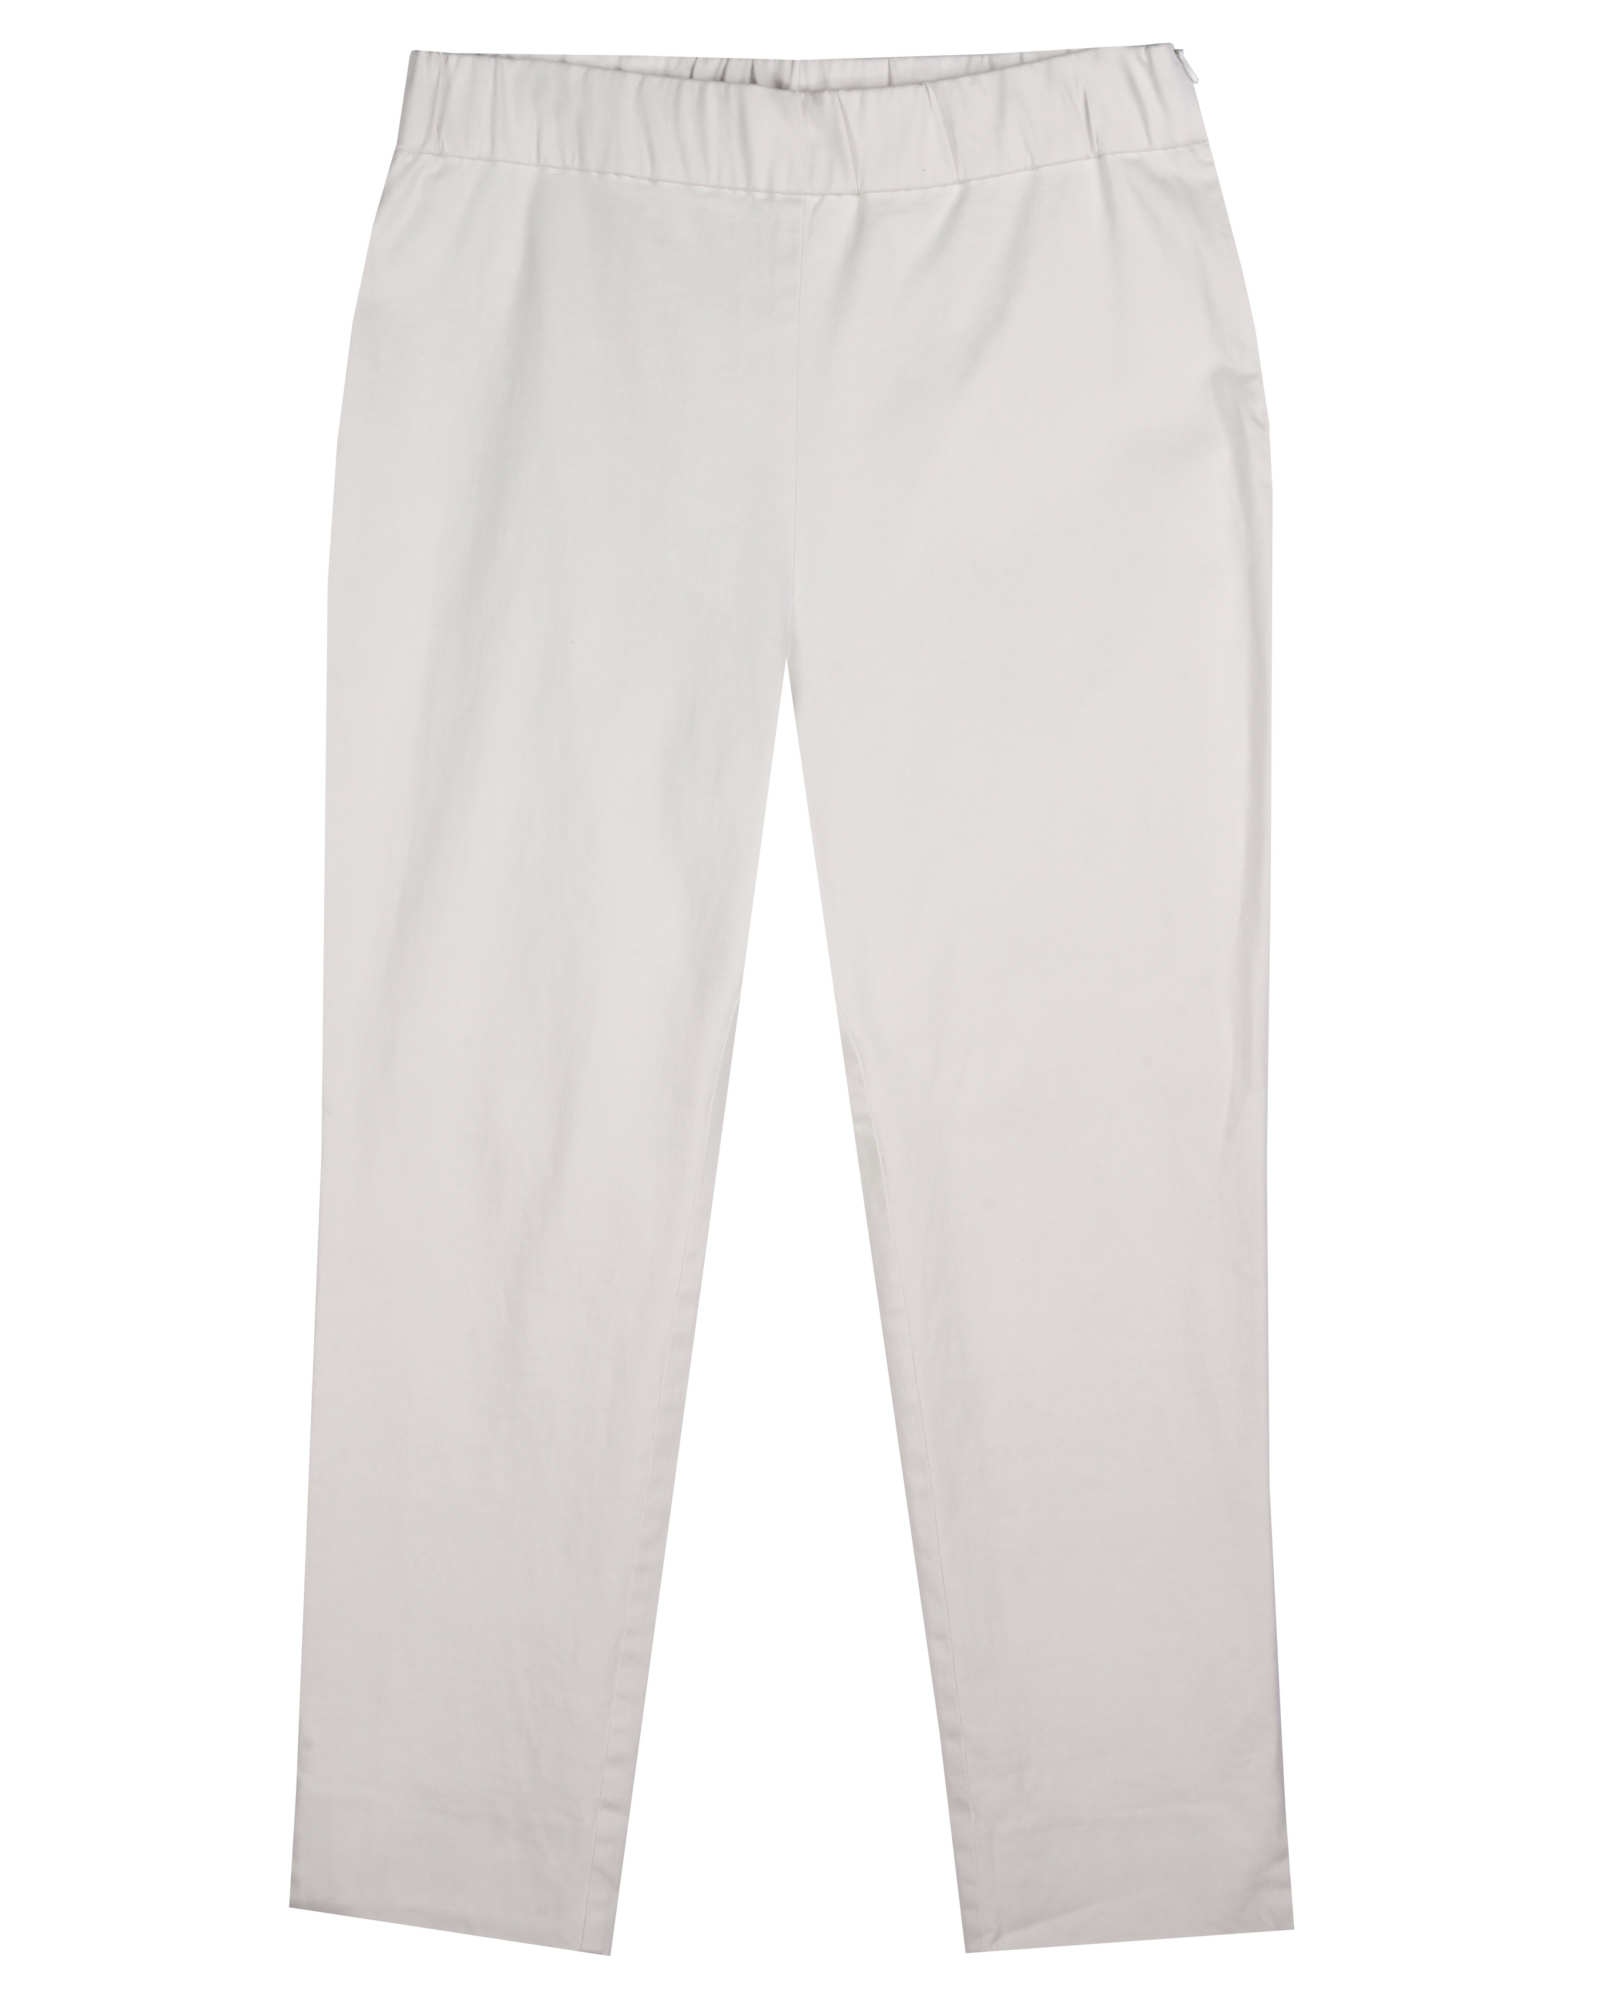 Sueded Stretch Organic Cotton Sateen Pant